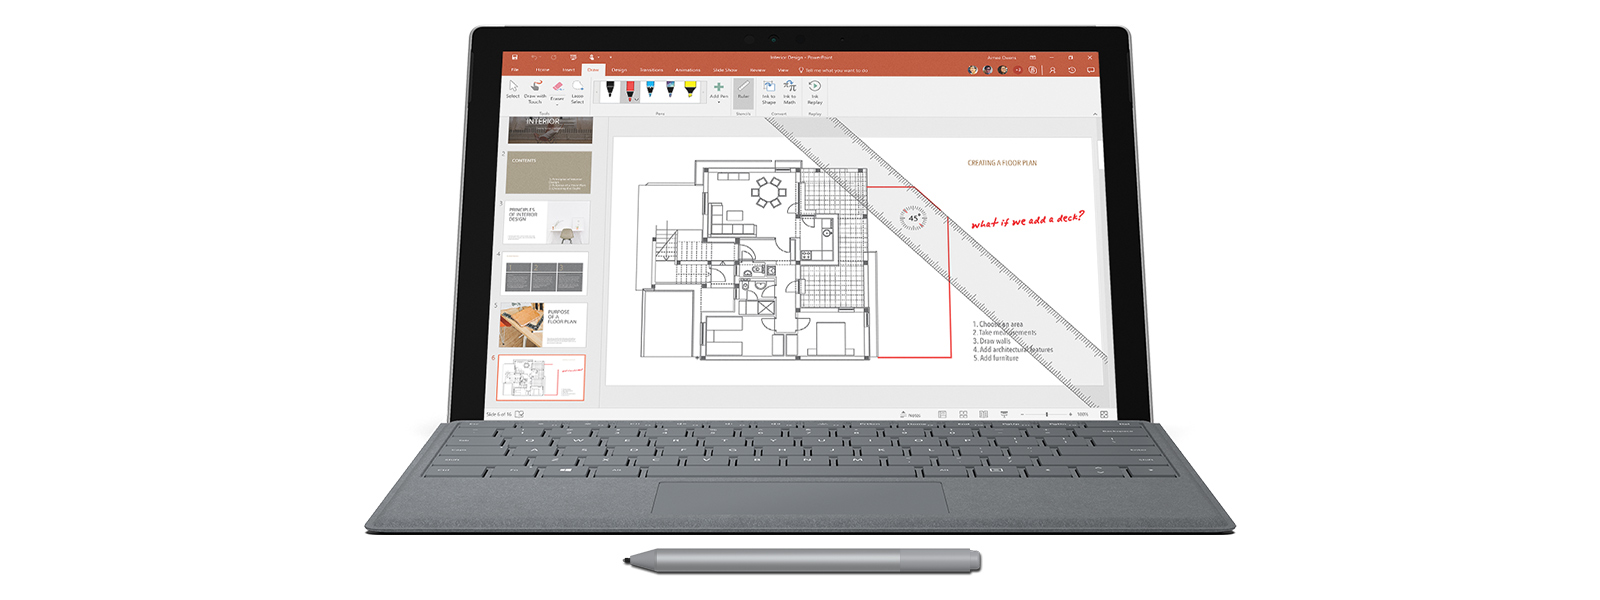 Screen shot of a floor plan with Surface Pen, notations, and on-screen ruler